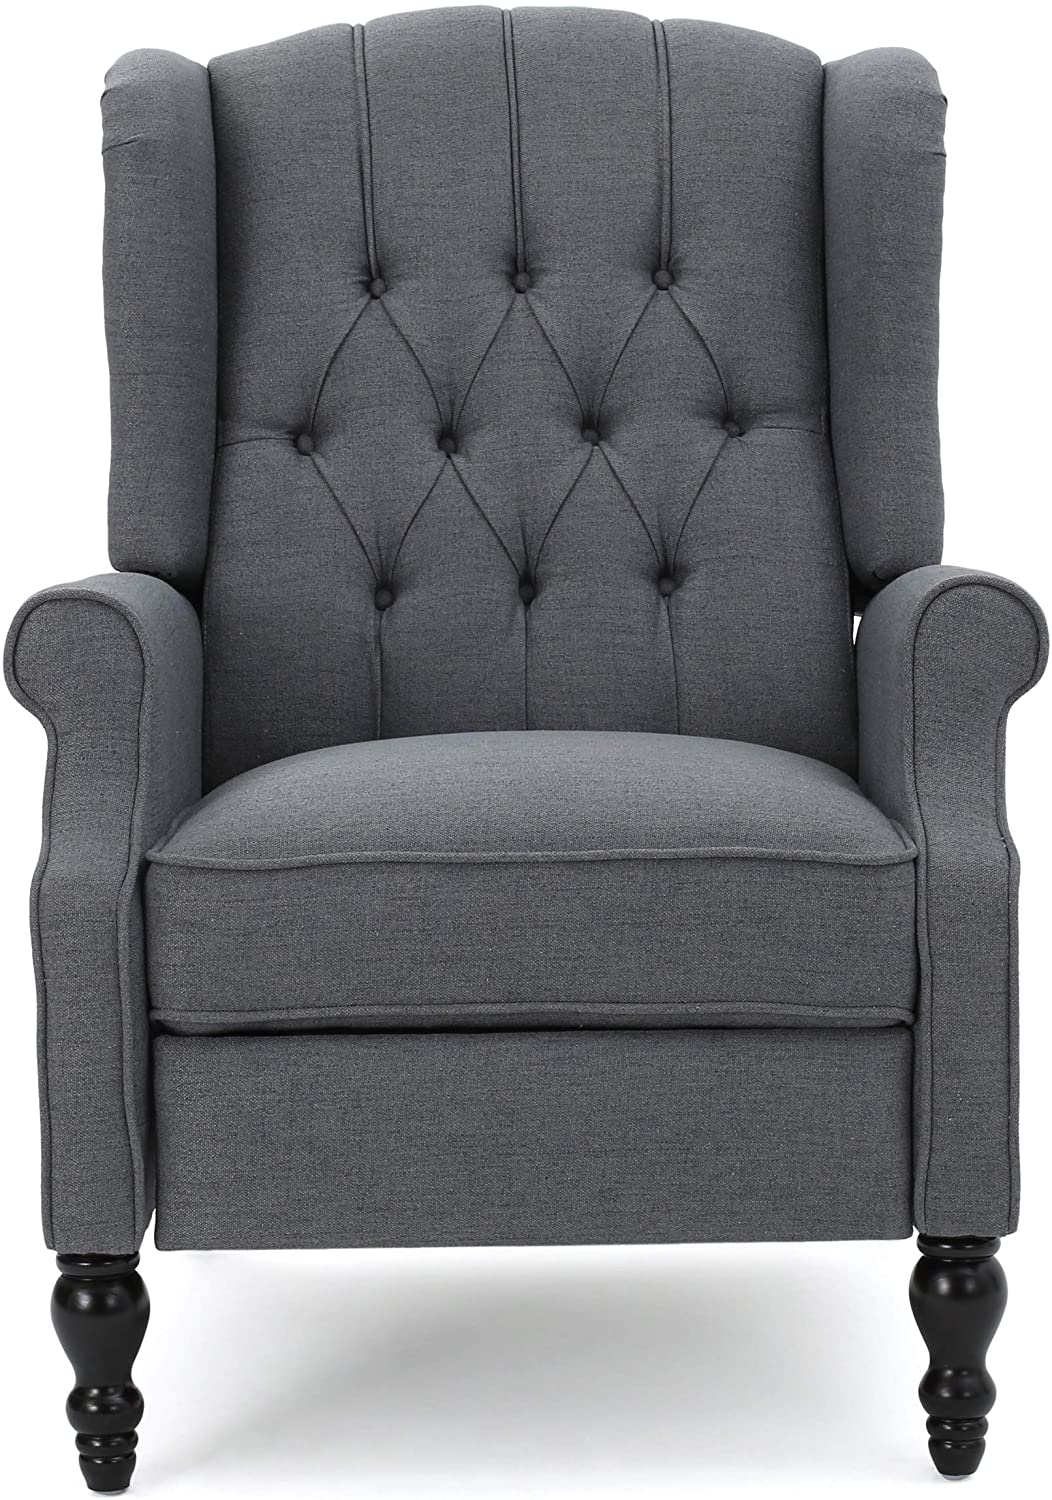 5.Elizabeth Tufted Accent Recliner Chair